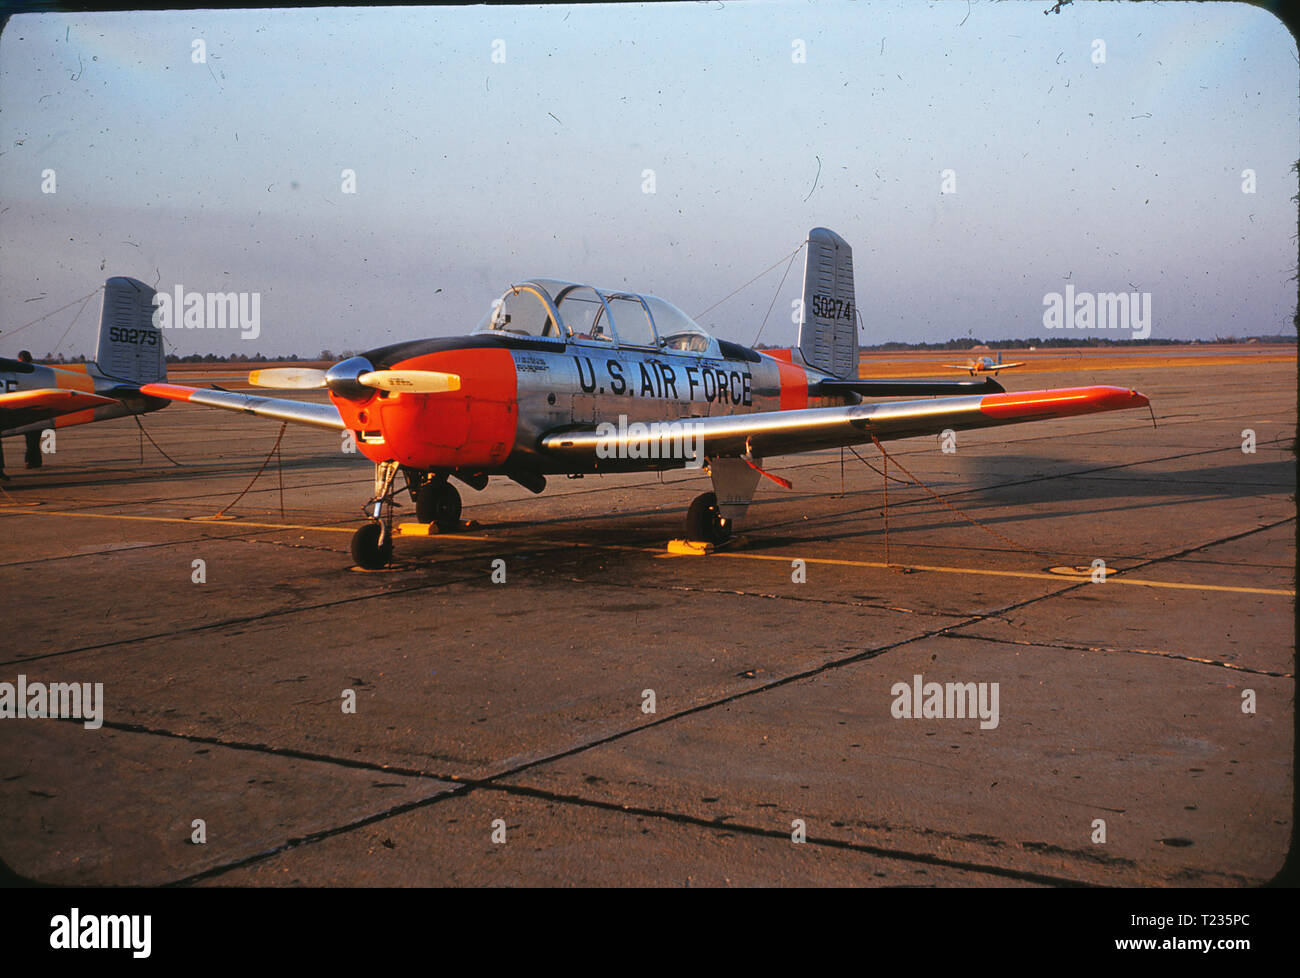 A Beechcraft T-34 Mentor parked at Spence Air Base in February 1959. Spence Air Base in Moultrie, GA was used as a US Air Force private contractor operated fight training school from 1951 to 1961, when the field was returned to civilian control. - Stock Image